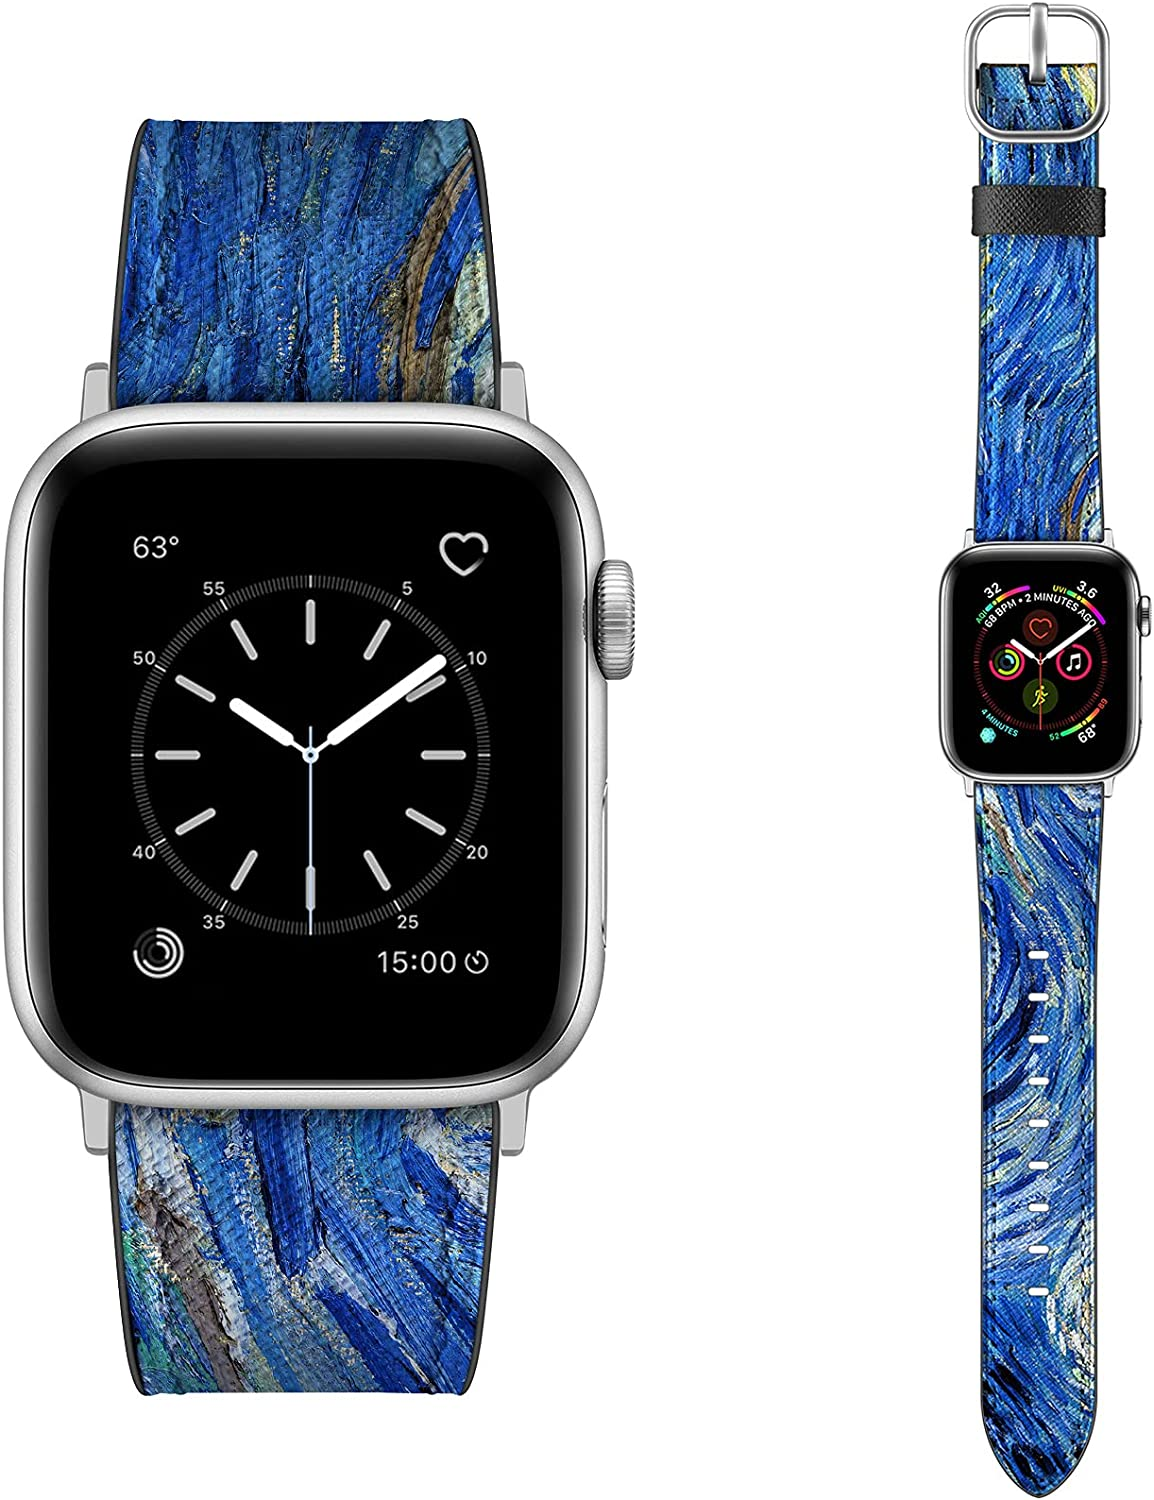 Dilando Leather Band Compatible with Apple Watch Series 6 38mm 40mm 42mm 44mm Genuine Leather Vintage Designer Strap Classic Bracelet Buckle for iWatch SE 6 5 4 3 2 1 Women Men Navy Blue 38mm 40mm